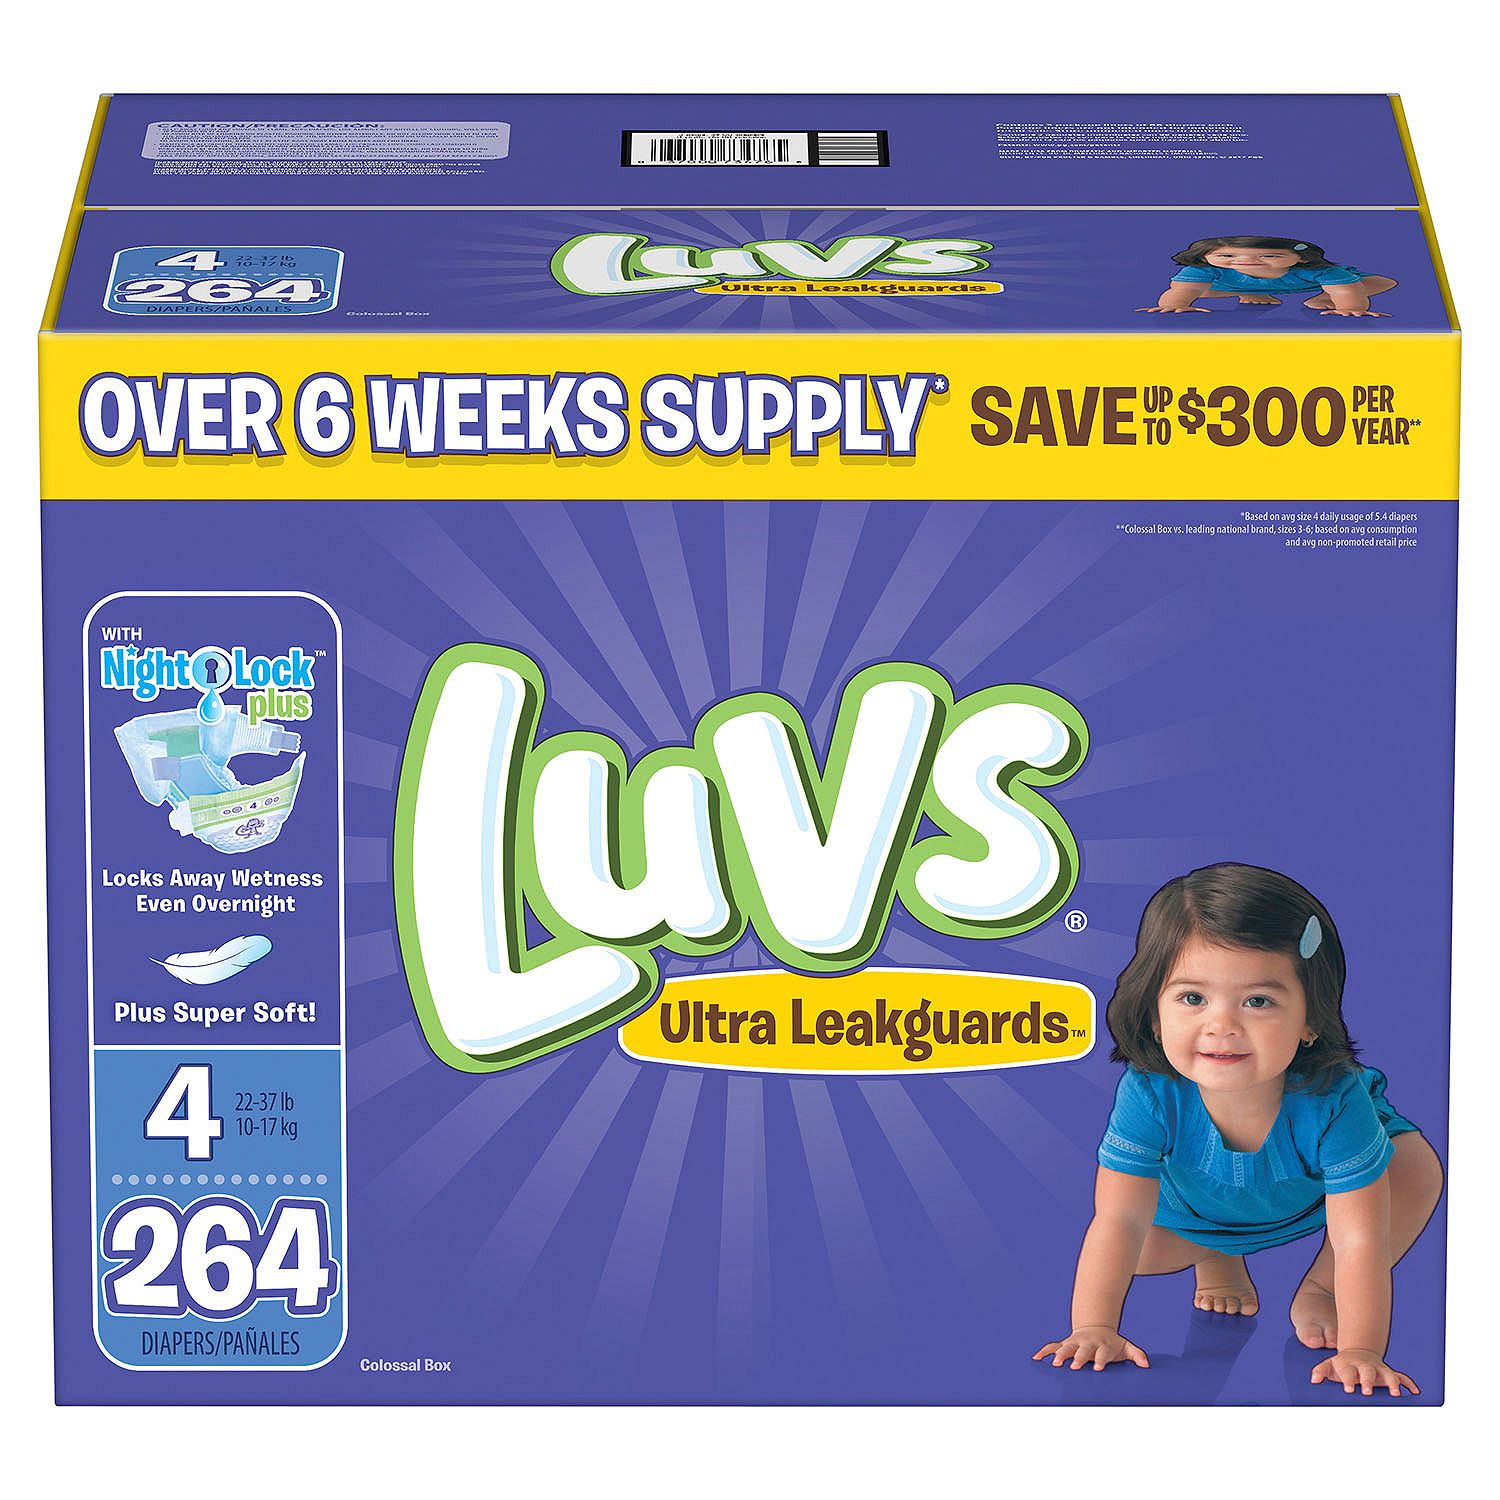 Luvs Ultra Leakguards Diapers Size Size 4 264 ct. Bulk Qty, Free Shipping Comfortable, Soft, No leaking & Good... by Branded Diapers